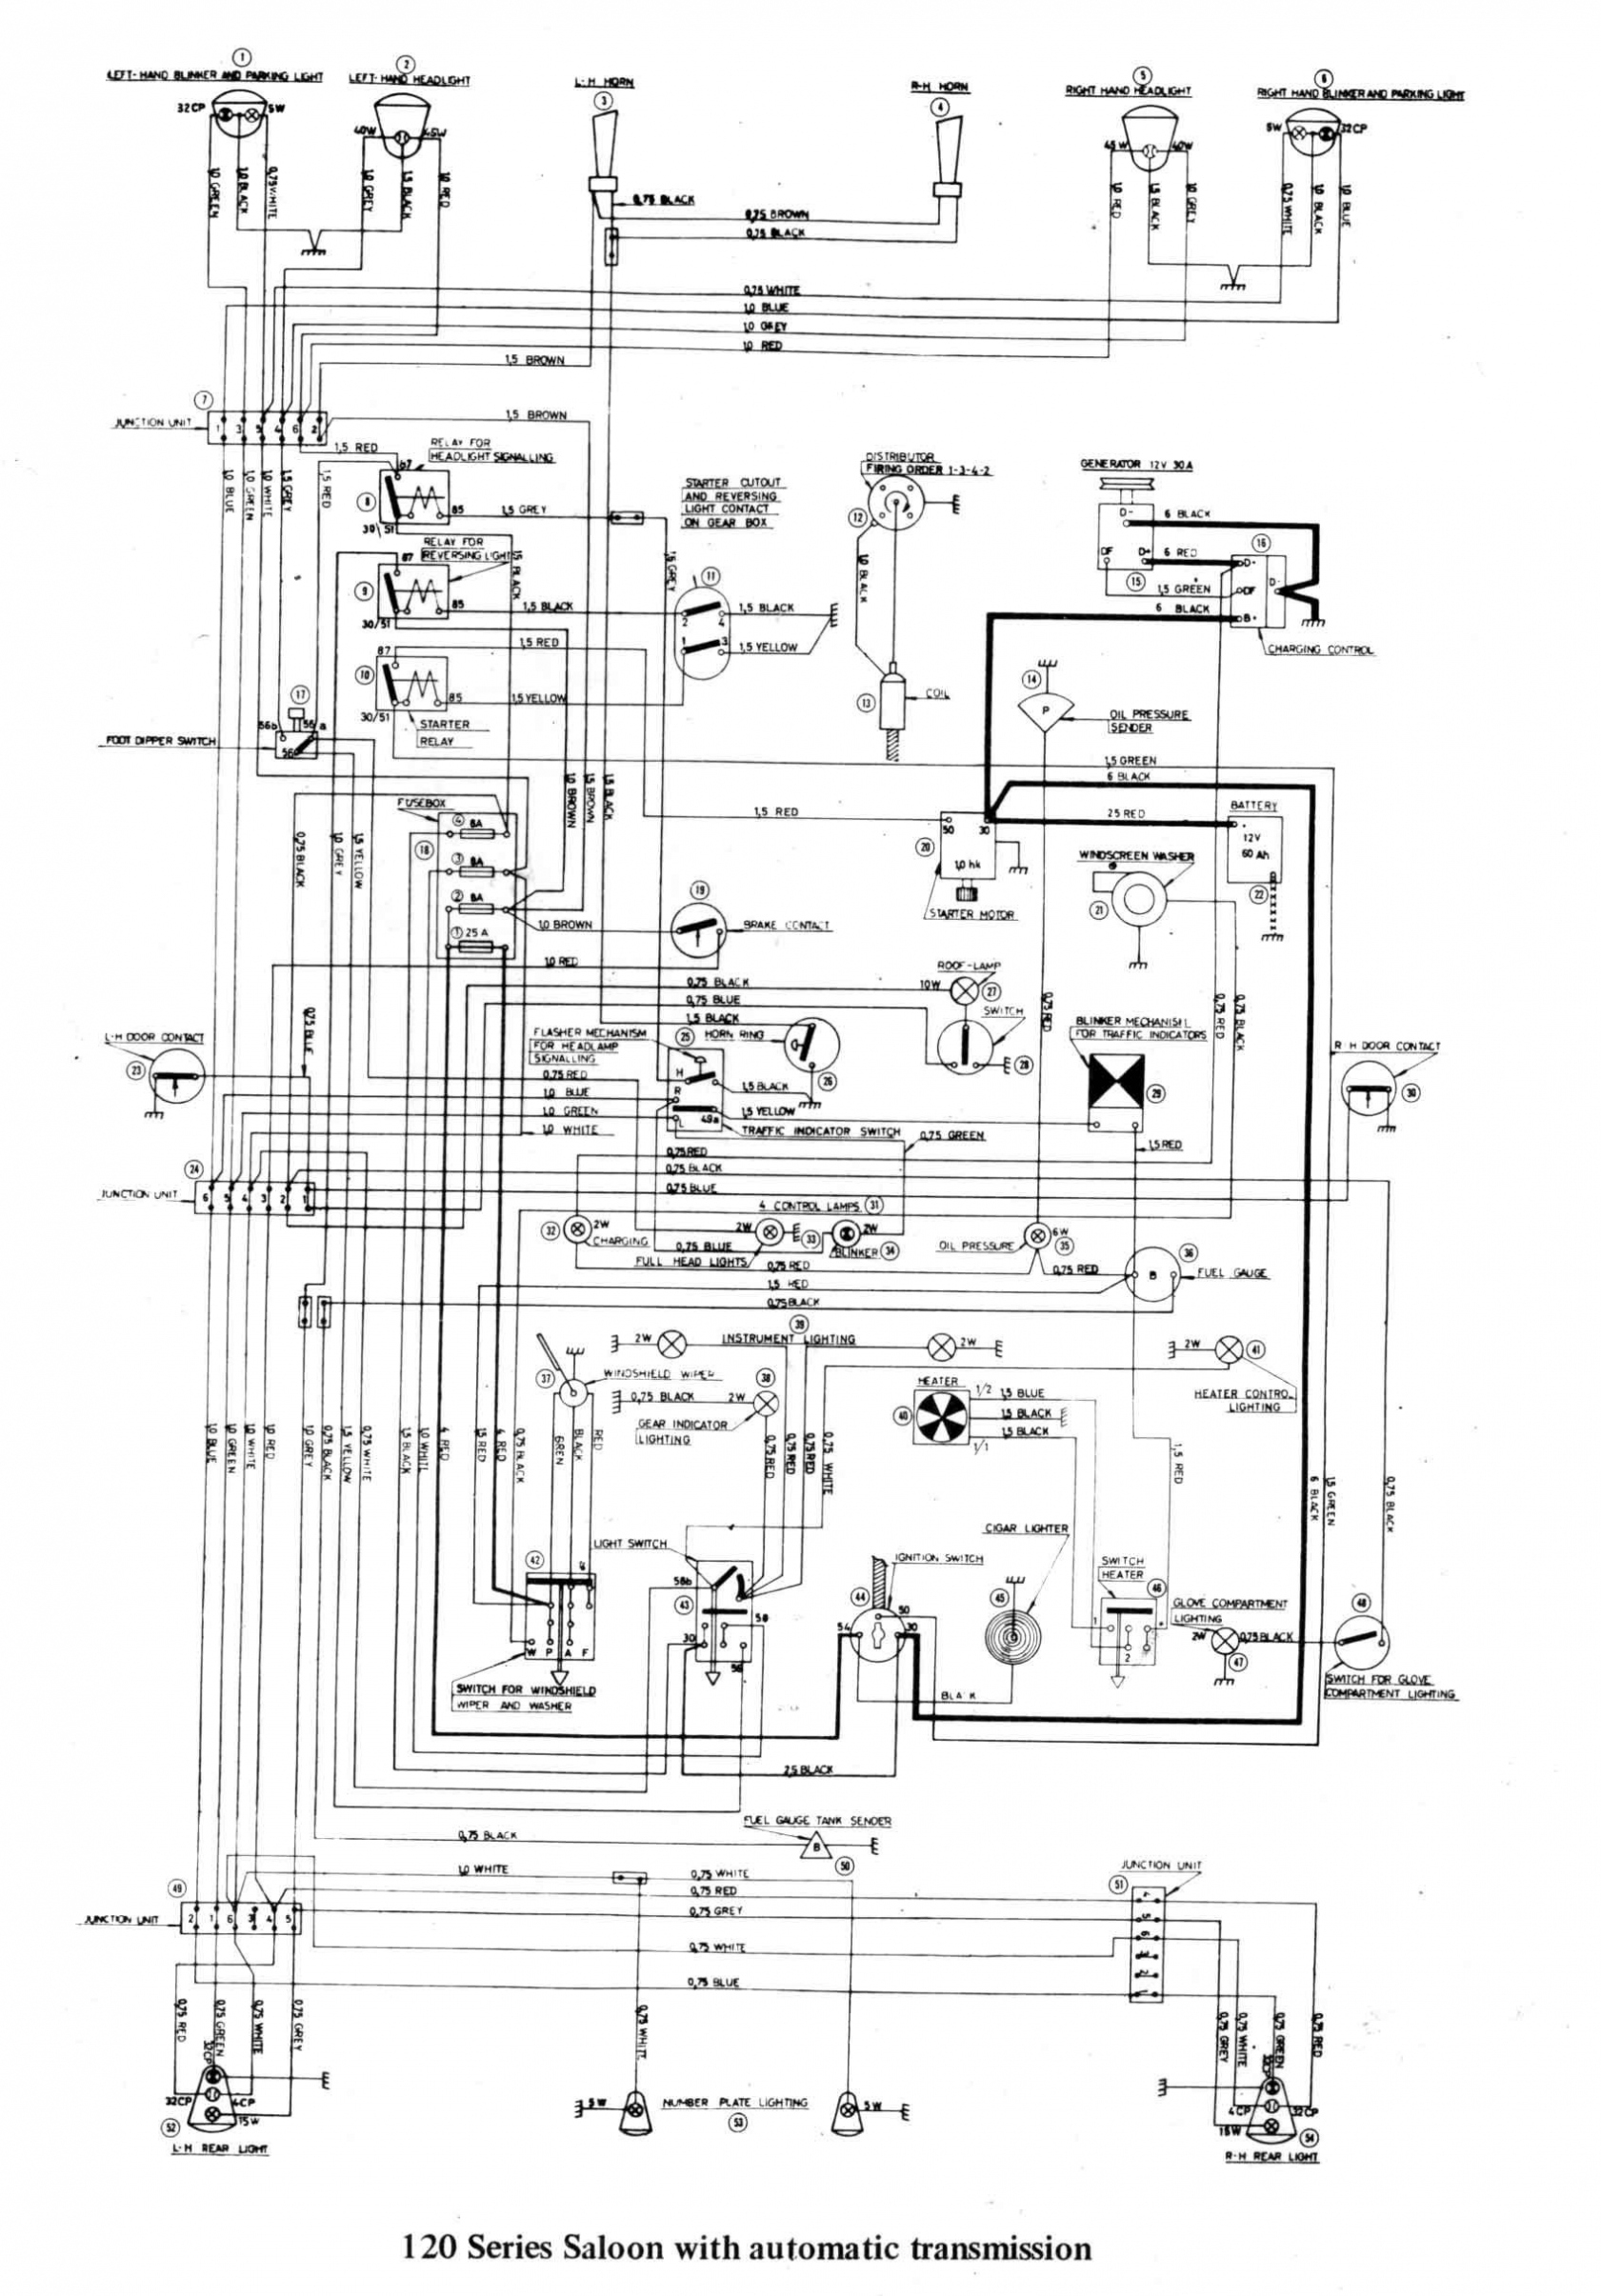 36 Volt Ez Go Golf Cart Wiring Diagram — Daytonva150 - Ez Go Gas Golf Cart Wiring Diagram Pdf